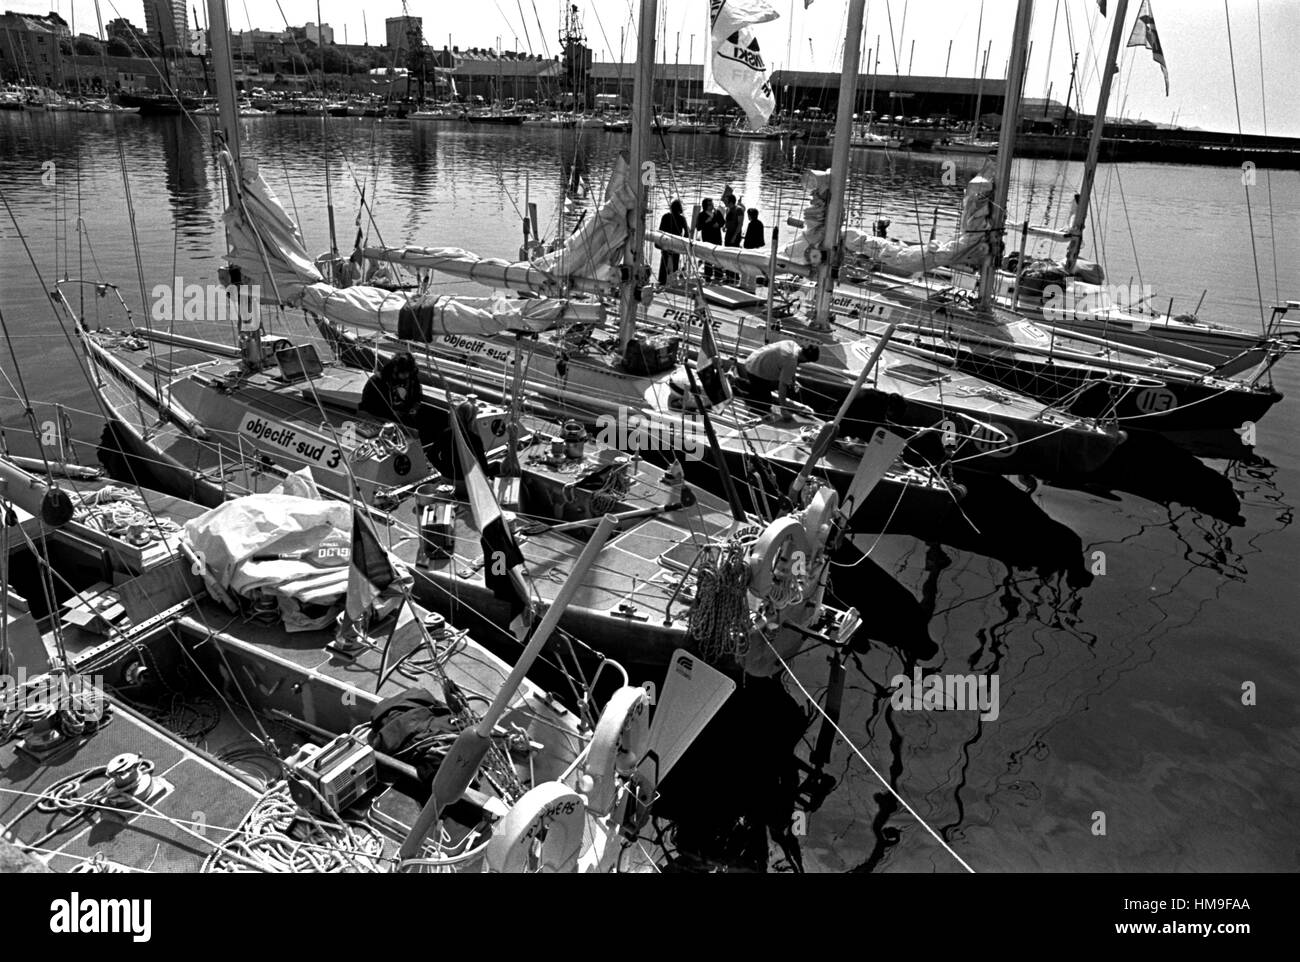 AJAXNETPHOTO. 5TH JUNE, 1976. PLYMOUTH, ENGLAND. - OSTAR 1976 - FRENCH TEAM YACHTS OBJECTIF SUD, 1,2,3 & PIERRE - Stock Image